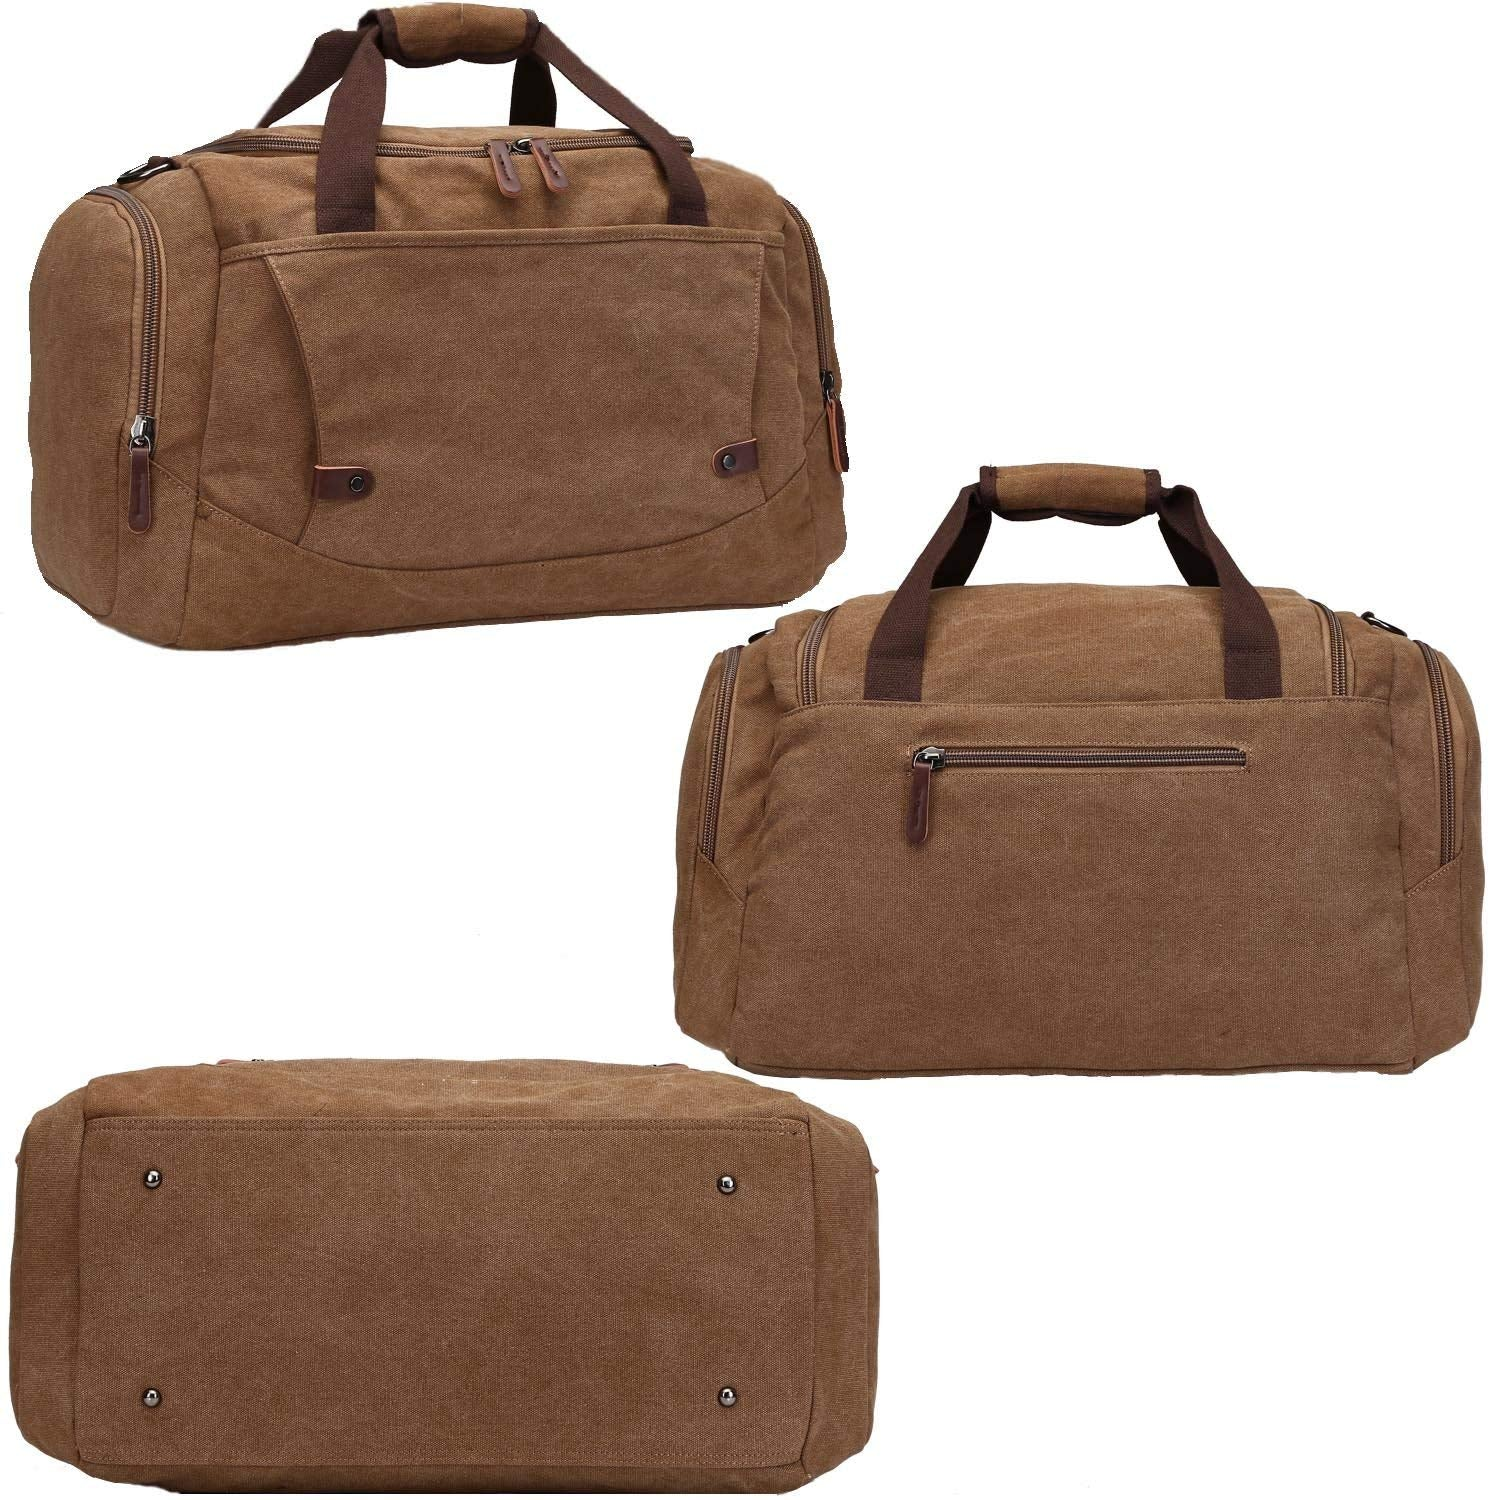 Canvas Duffel bag Overnight Travel Bags Travel Duffel Bag for Men Canvas&Leather gym Bag women - Ufumbuzi - Home